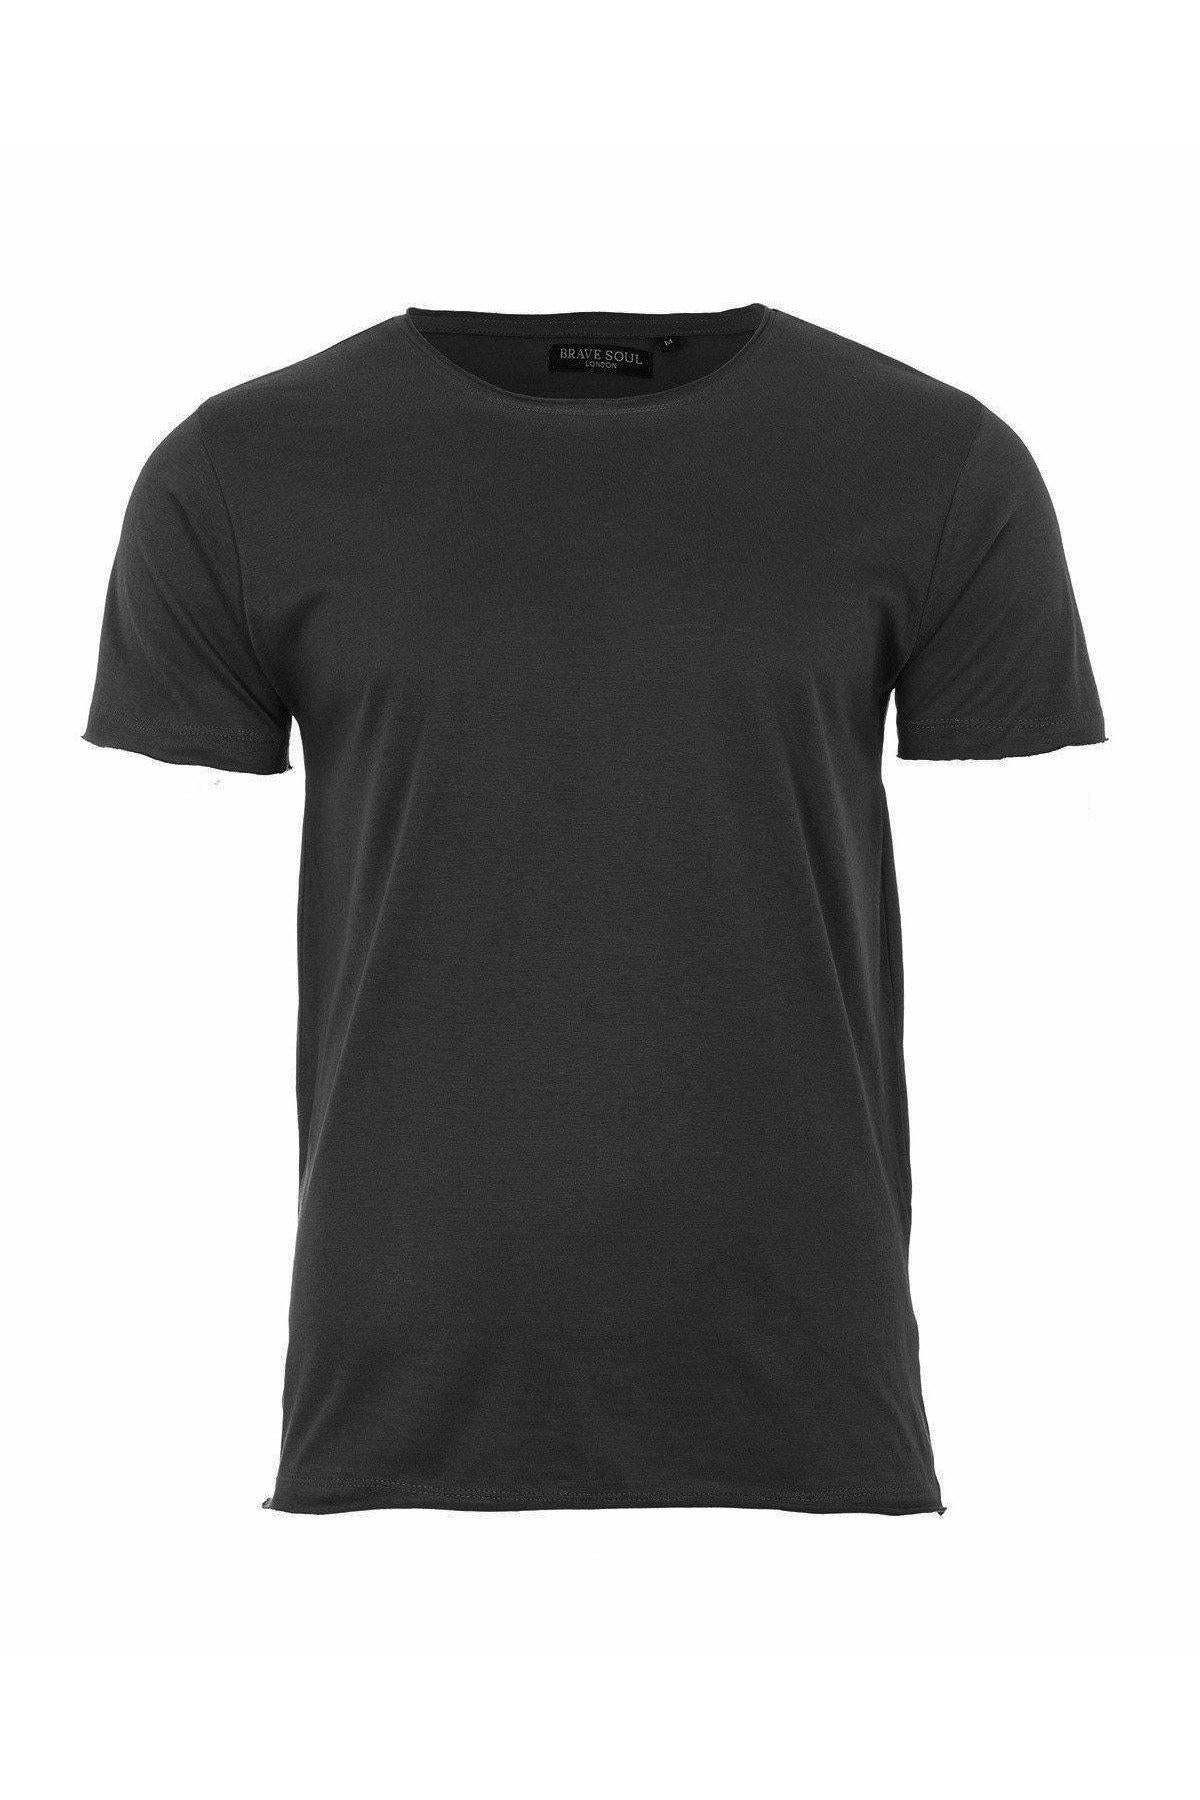 T-Shirts - Cutoff T-Shirt Black